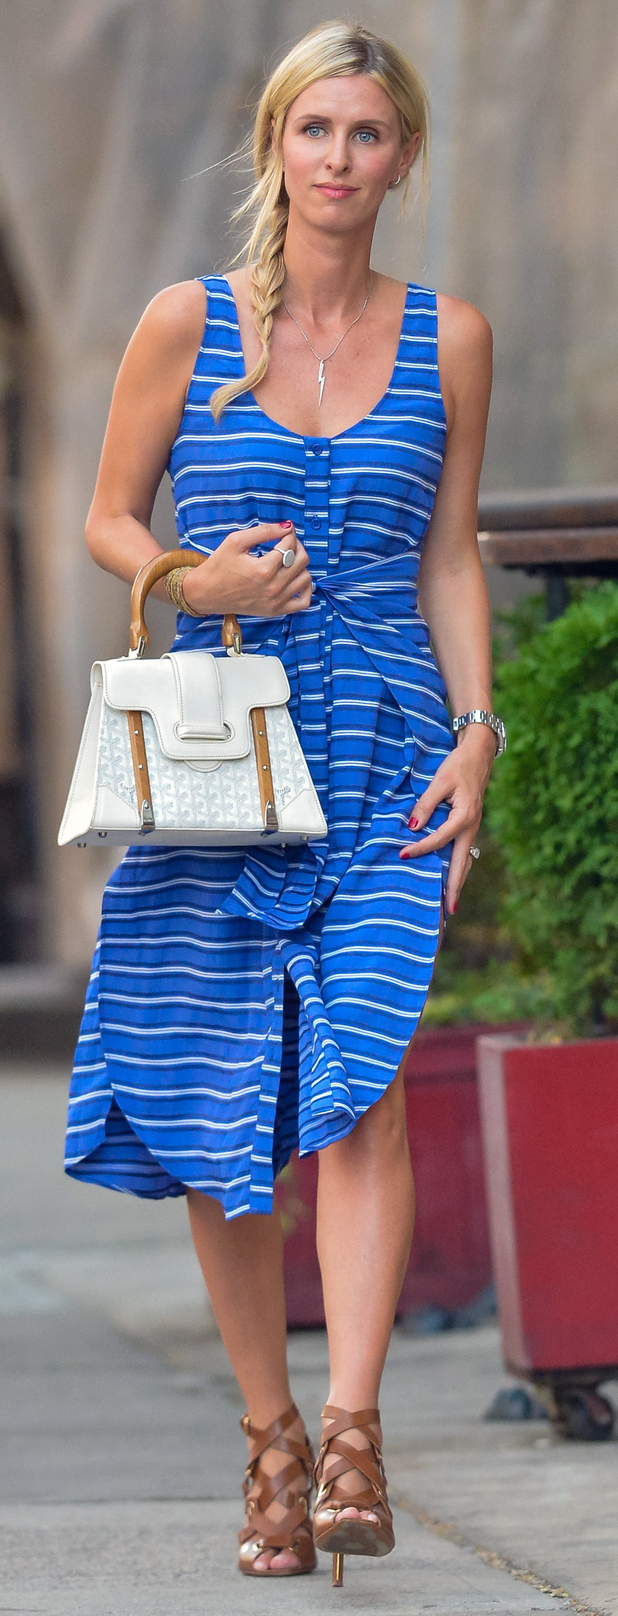 Nicky Hilton out and about in New York City wearing nautical inspired dress, 30th July 2015